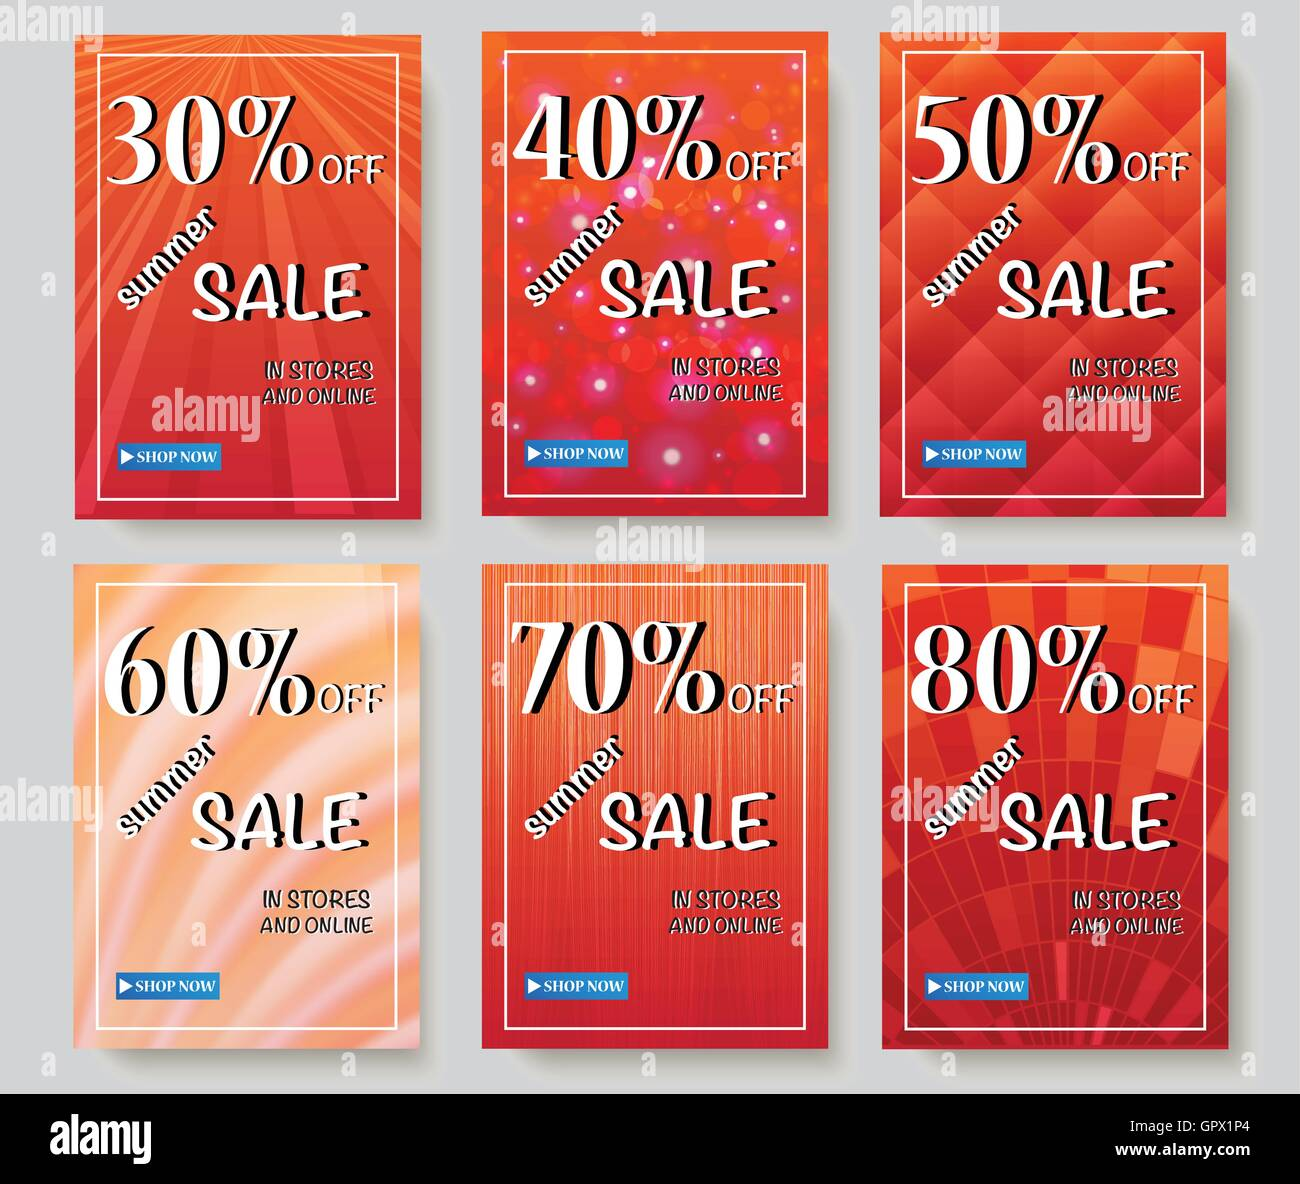 Social media sale banners and ads web template collection. Vector illustrations for website and mobile website banners, - Stock Image